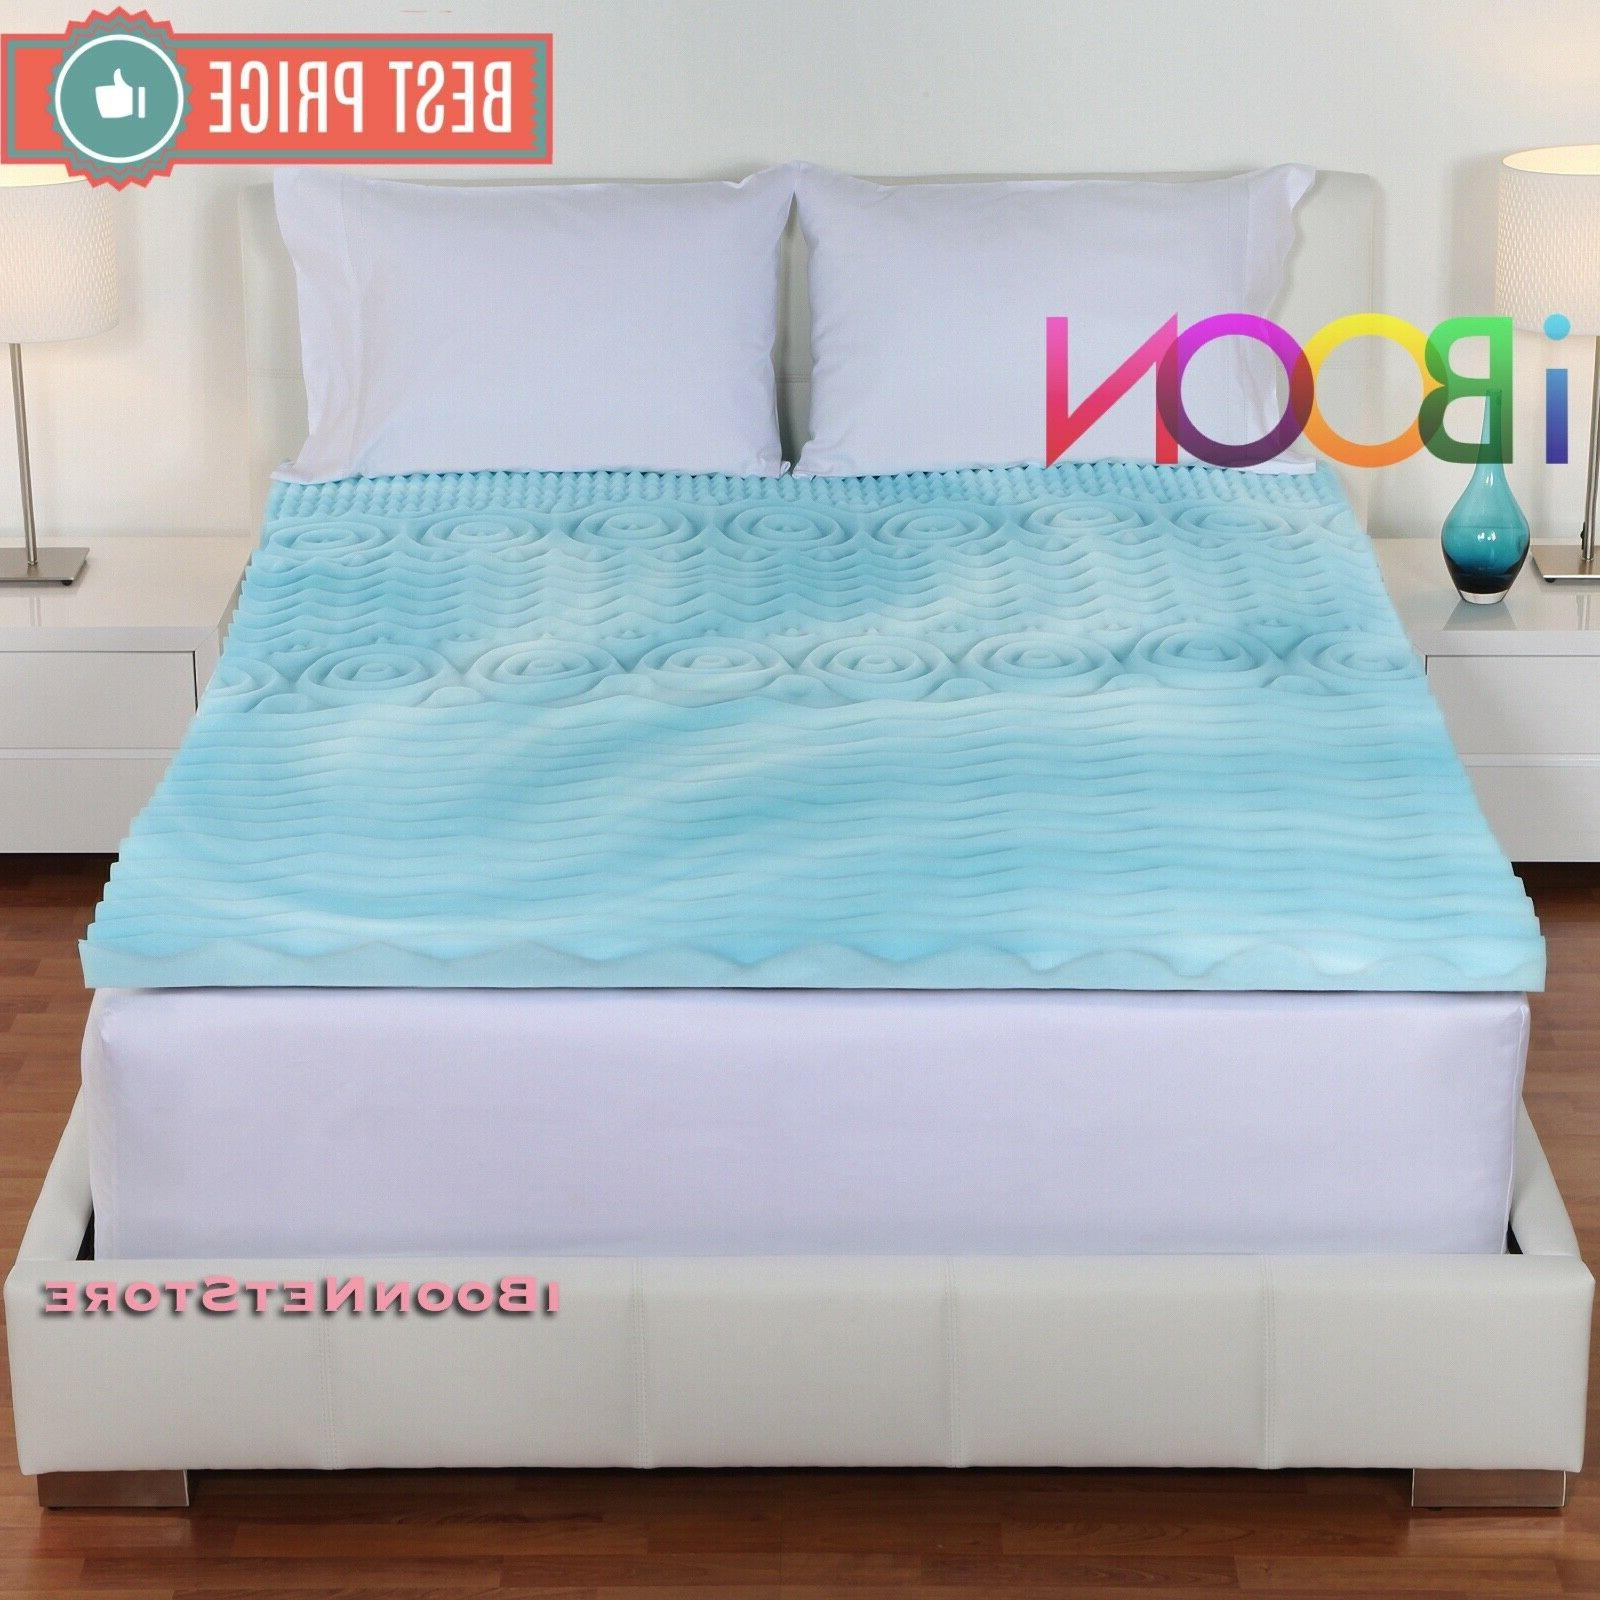 Orthopedic Bed Inch Topper Hypoallergenic